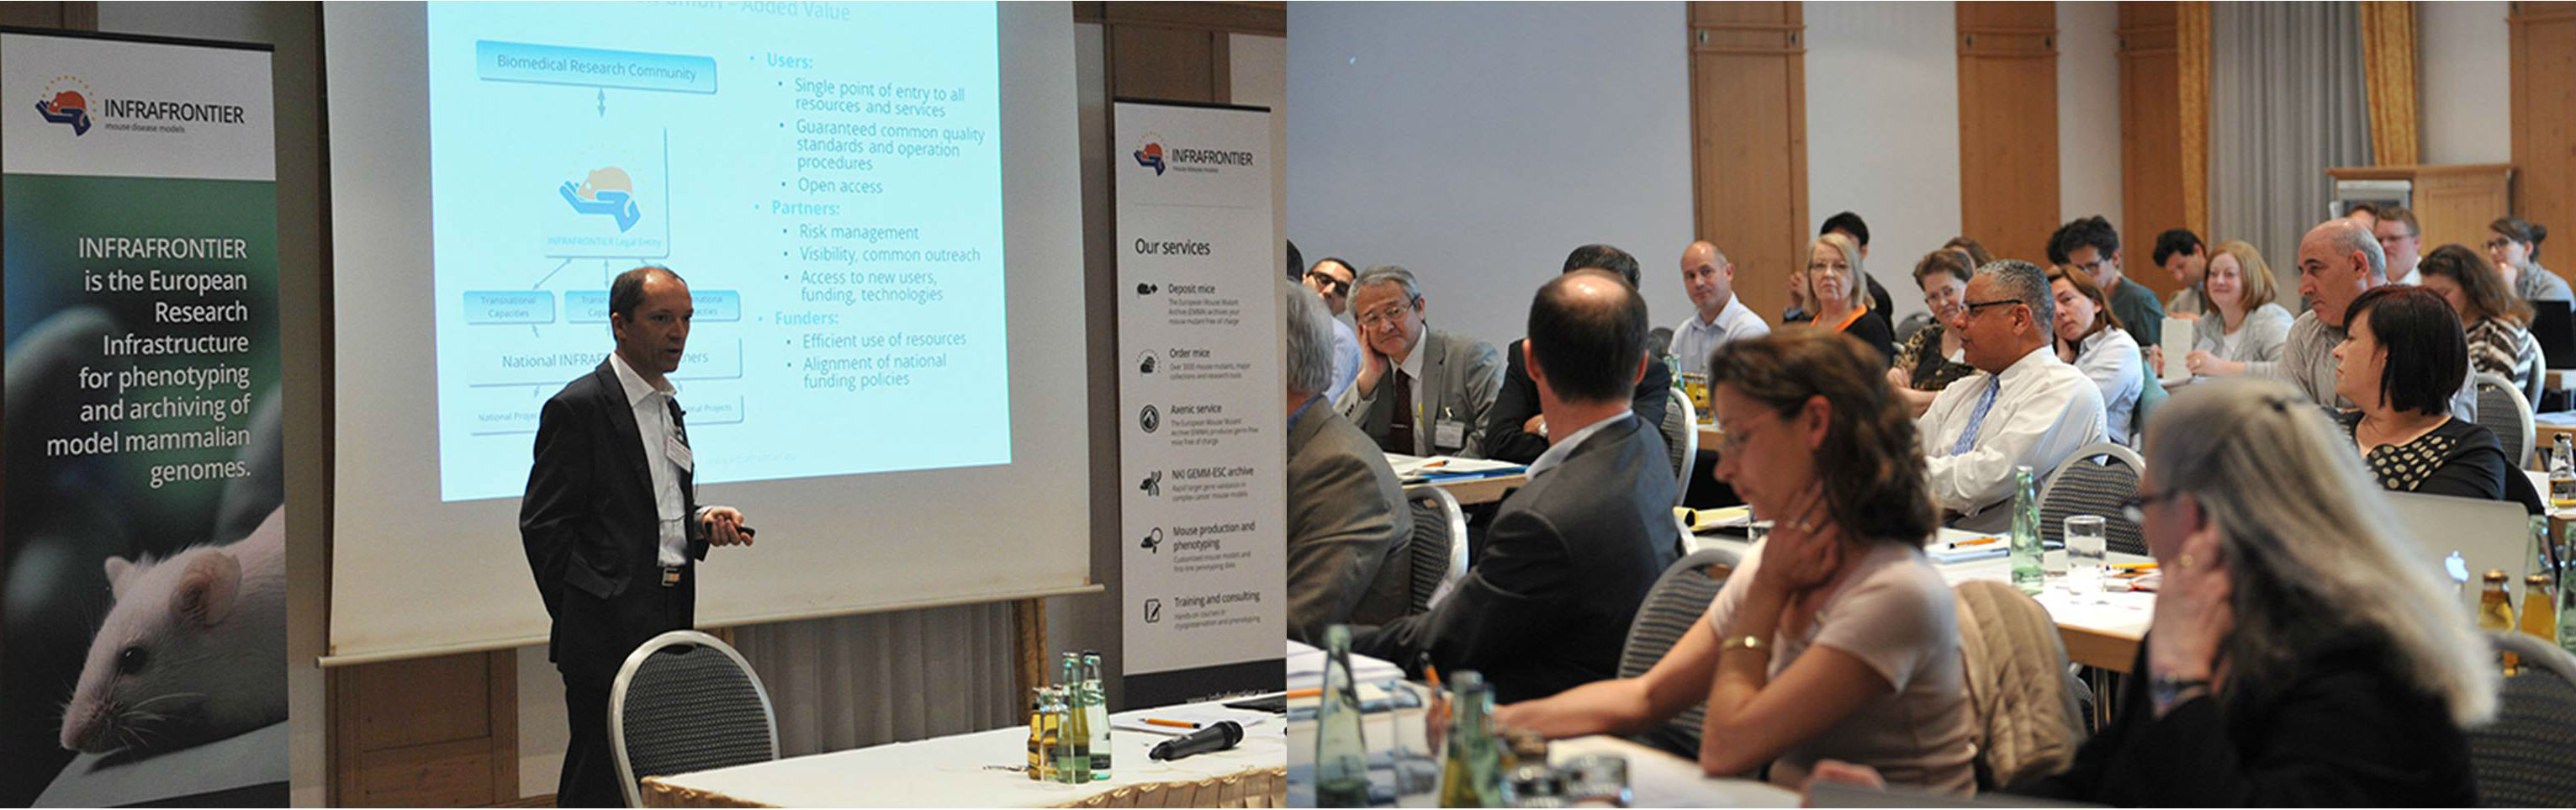 INFRAFRONTIER/IMPC Meeting Munich, May 2014IN